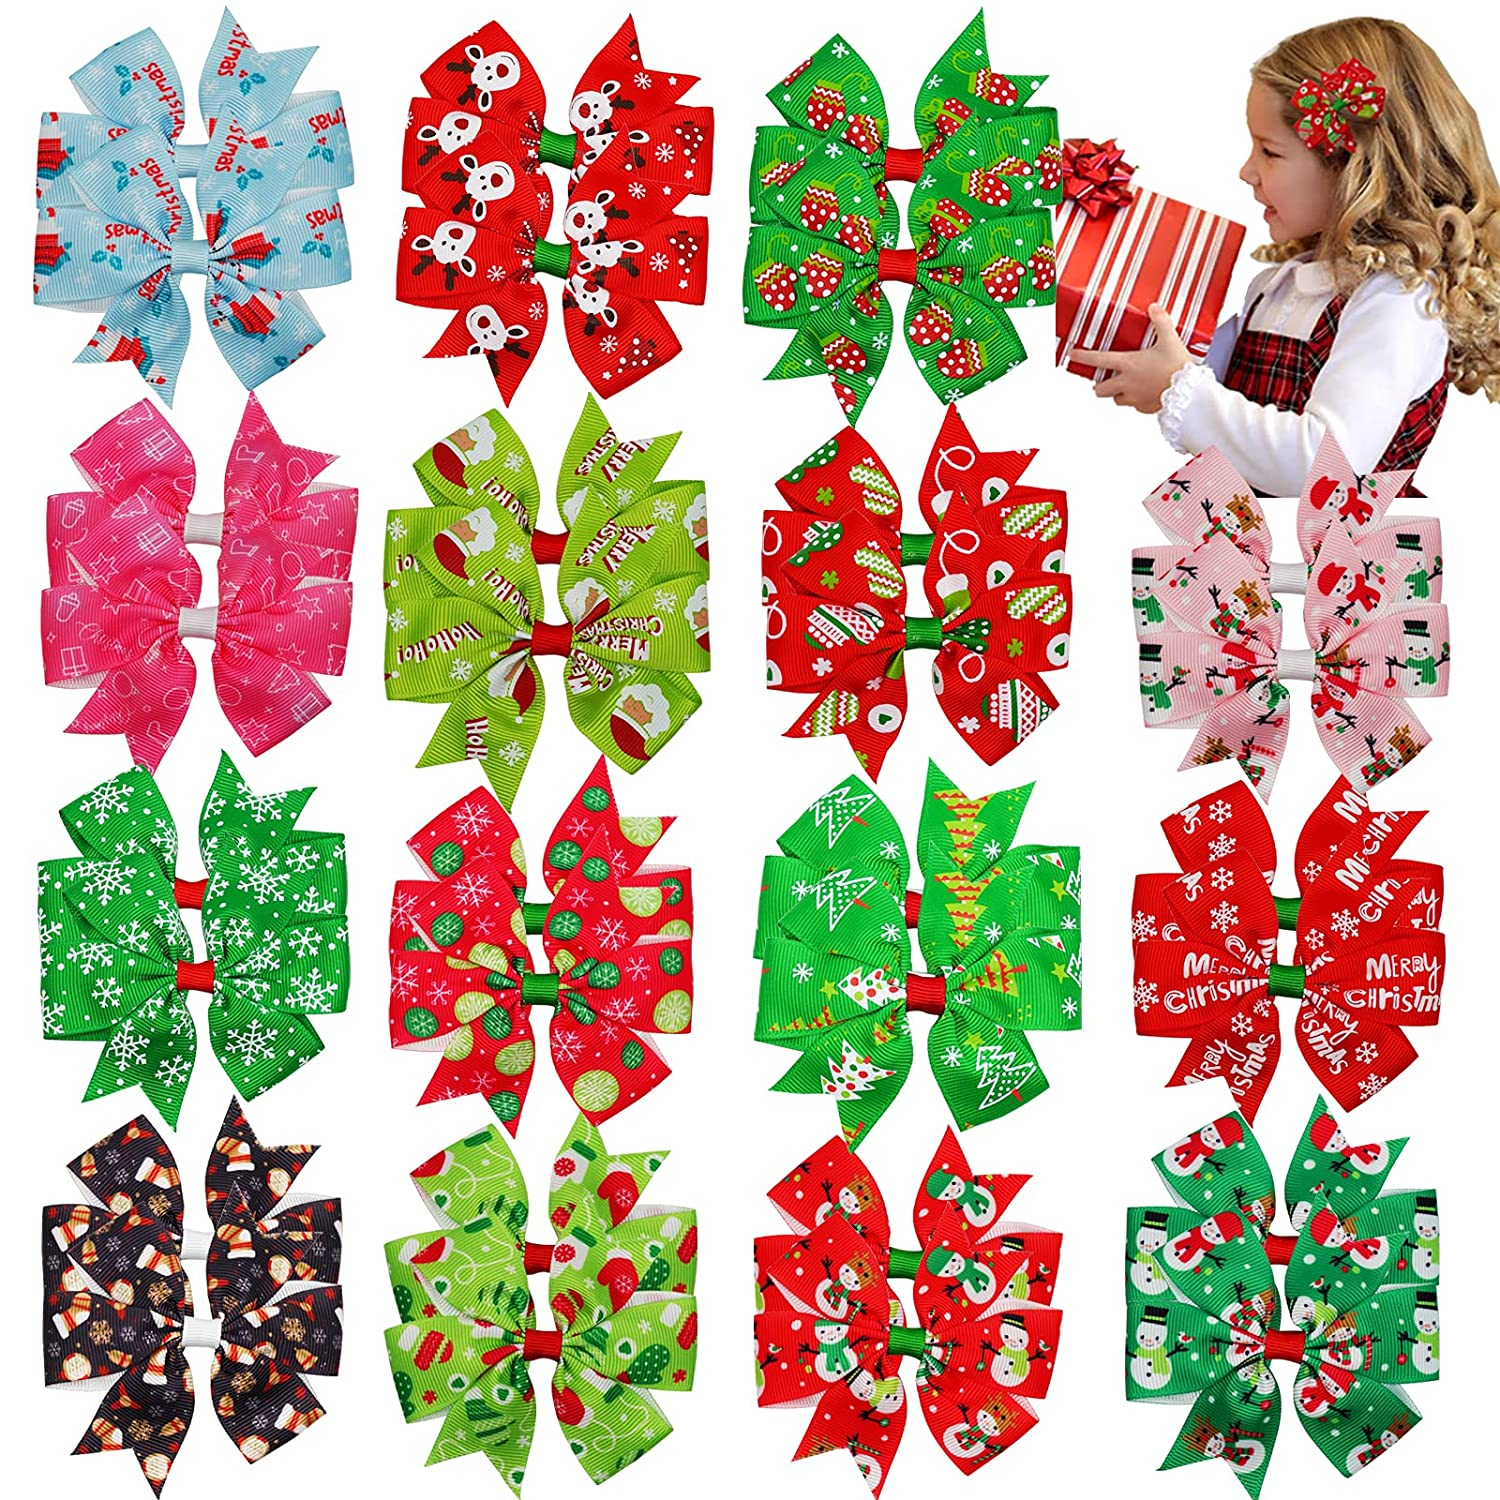 30PCS Christmas Hair Inventory cleanup selling sale Bows Alligator Grosgrain 3Inch Ribbon Rapid rise